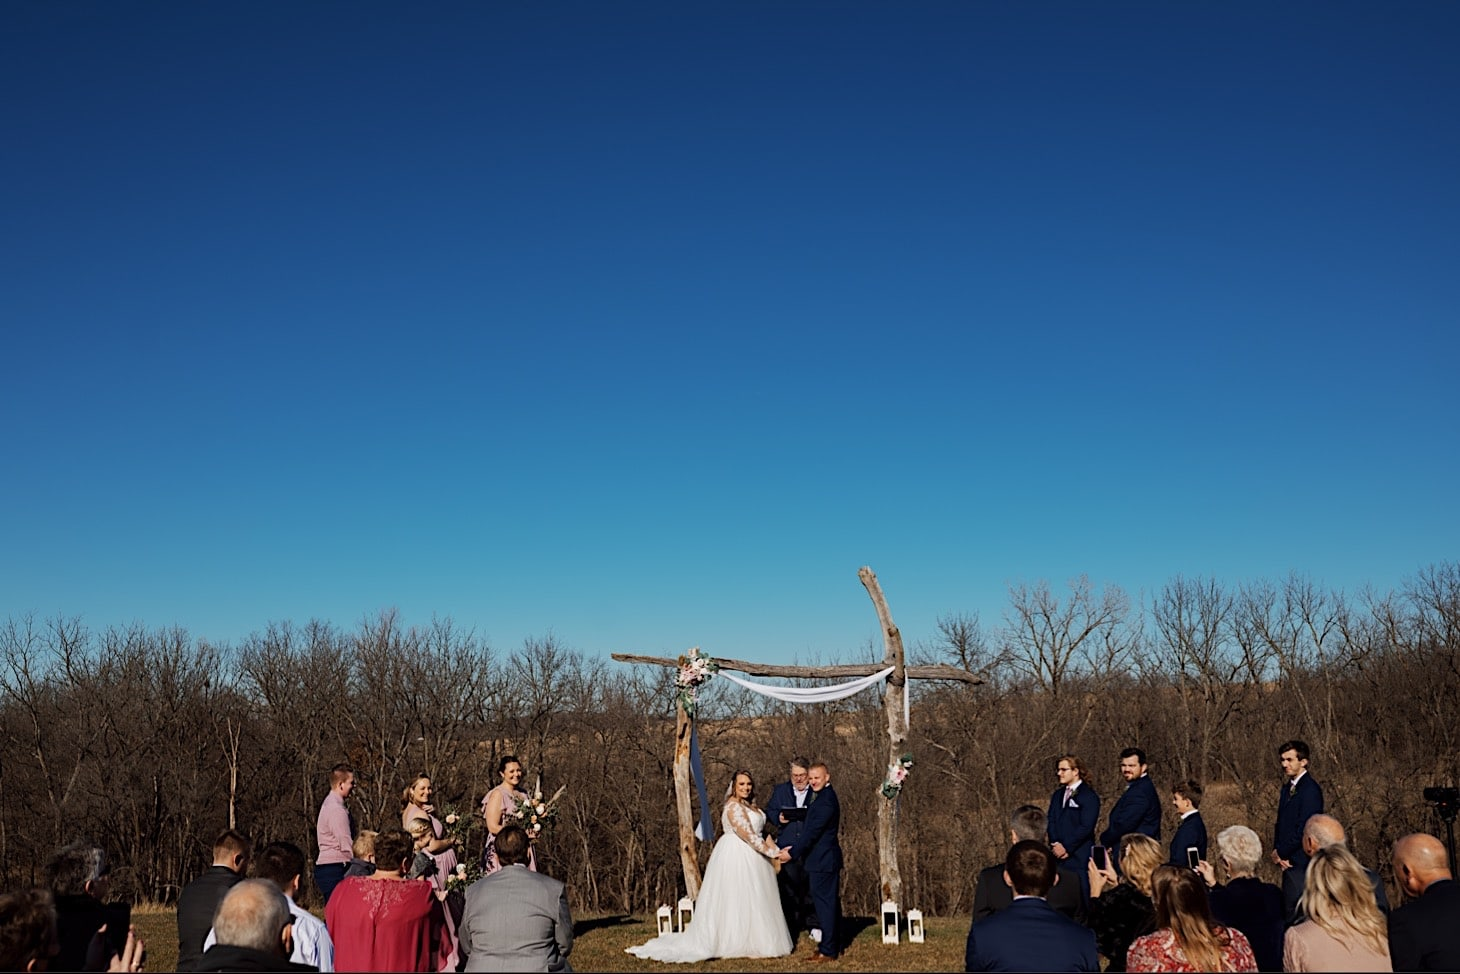 ceremony photos at red acre barn des moines